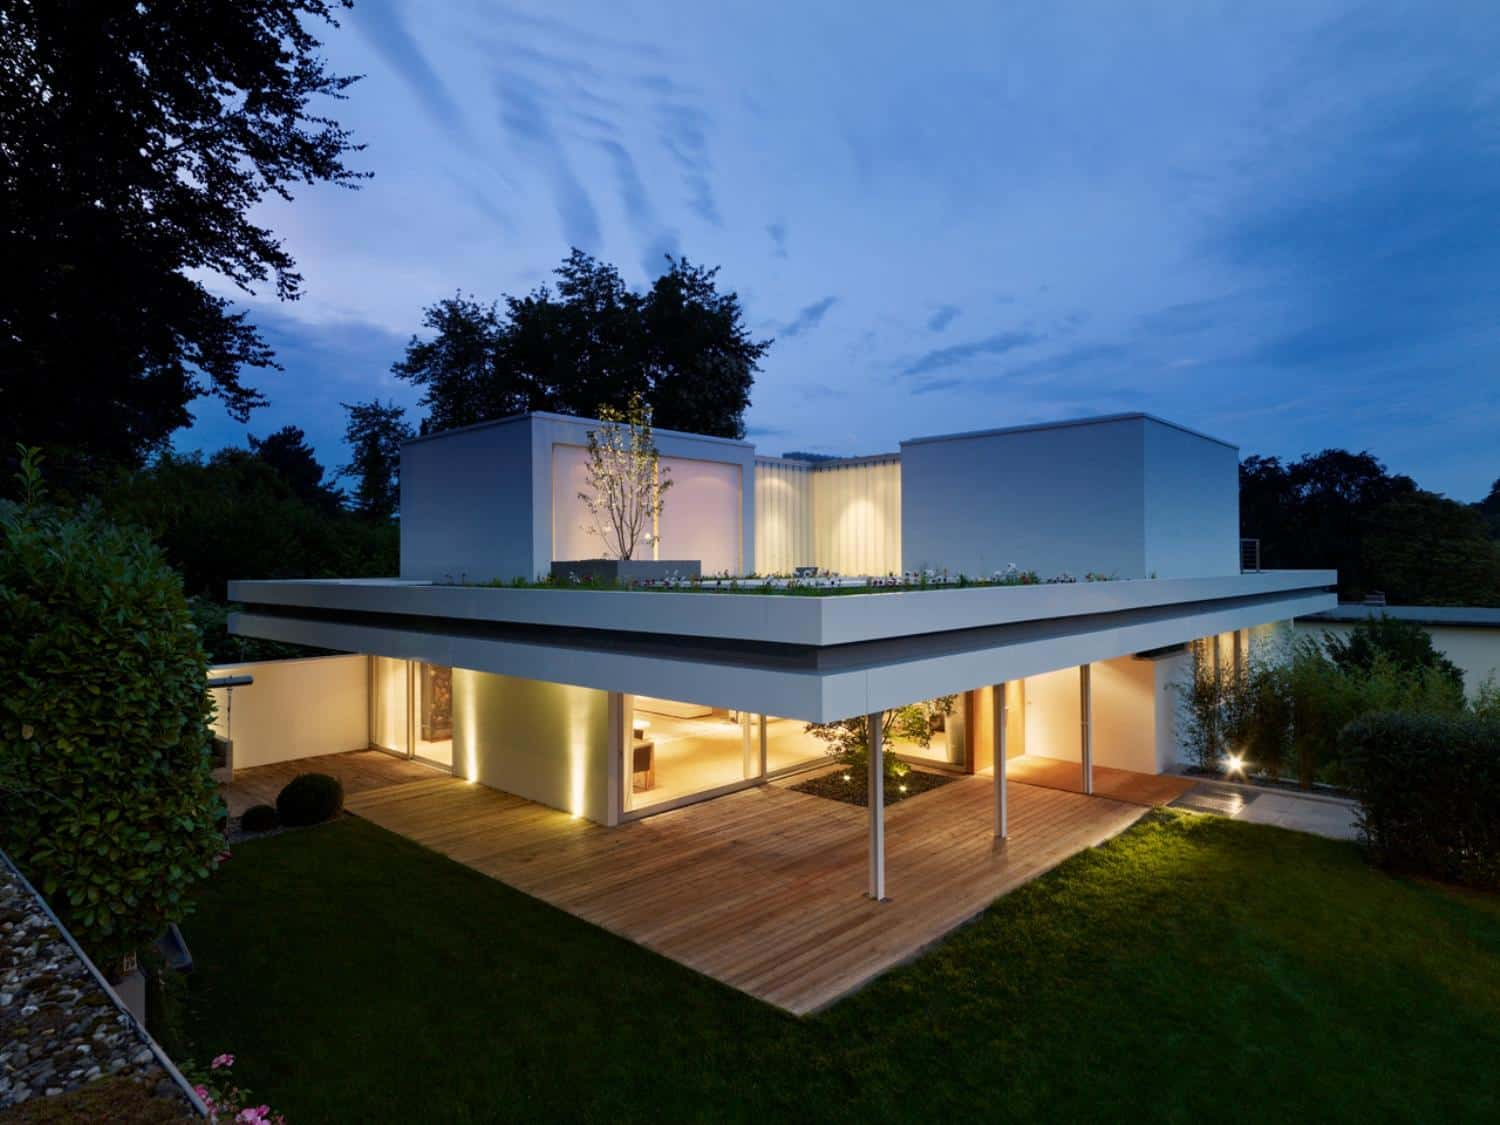 Contemporary Renovation and Additon to 60s Bungalow